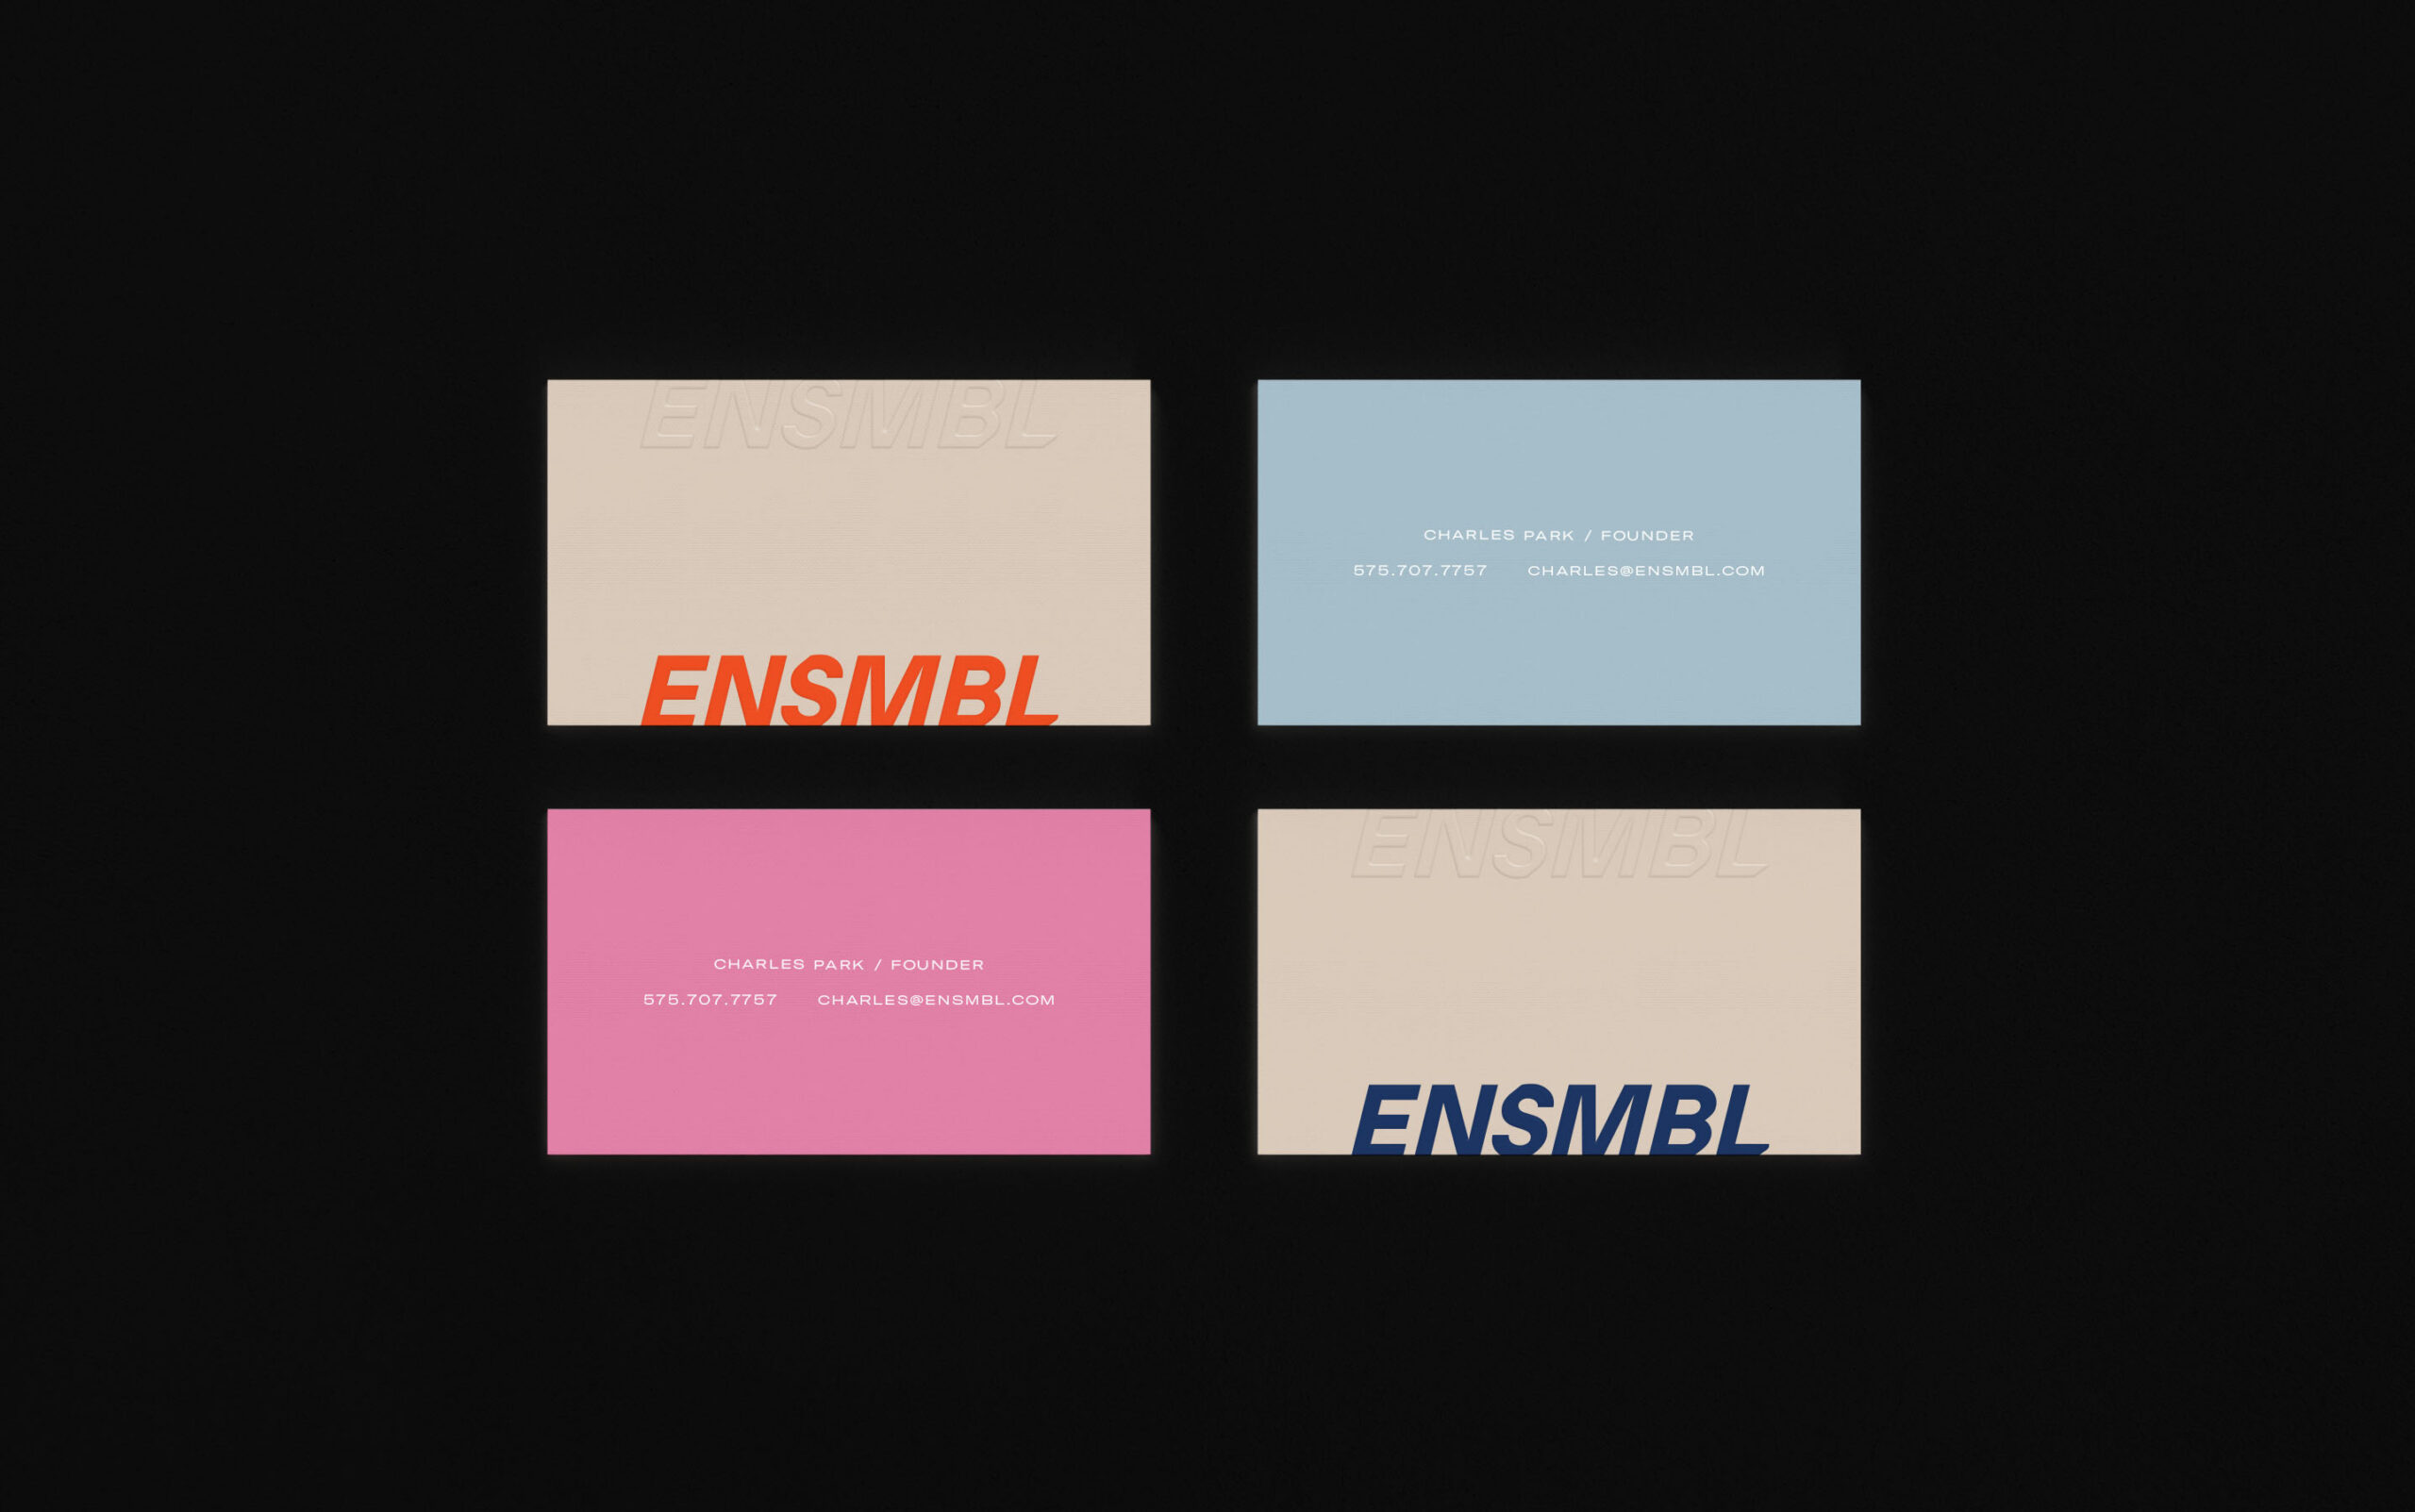 ENSMBL_BusinessCards-1